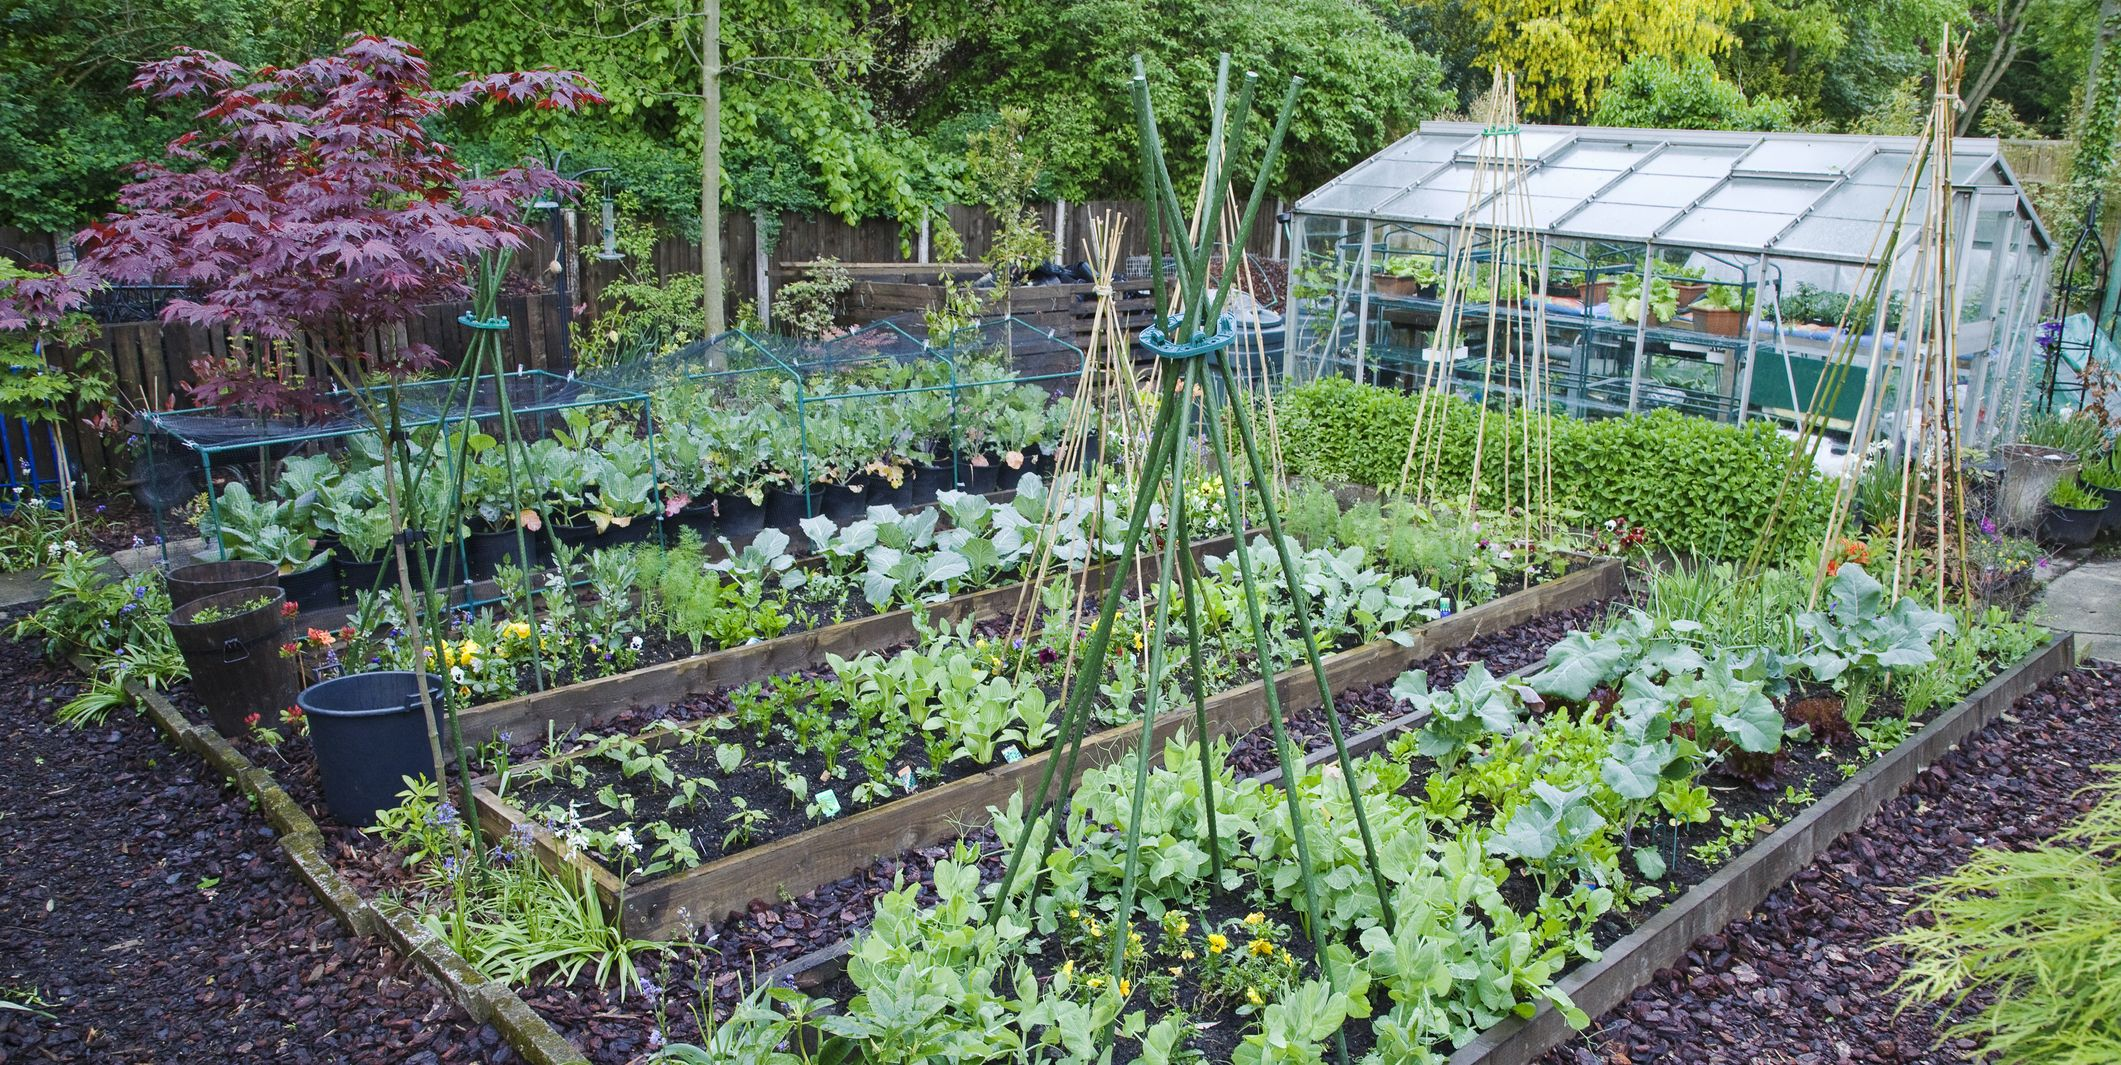 The 6 most cost-effective vegetables to grow in your garden